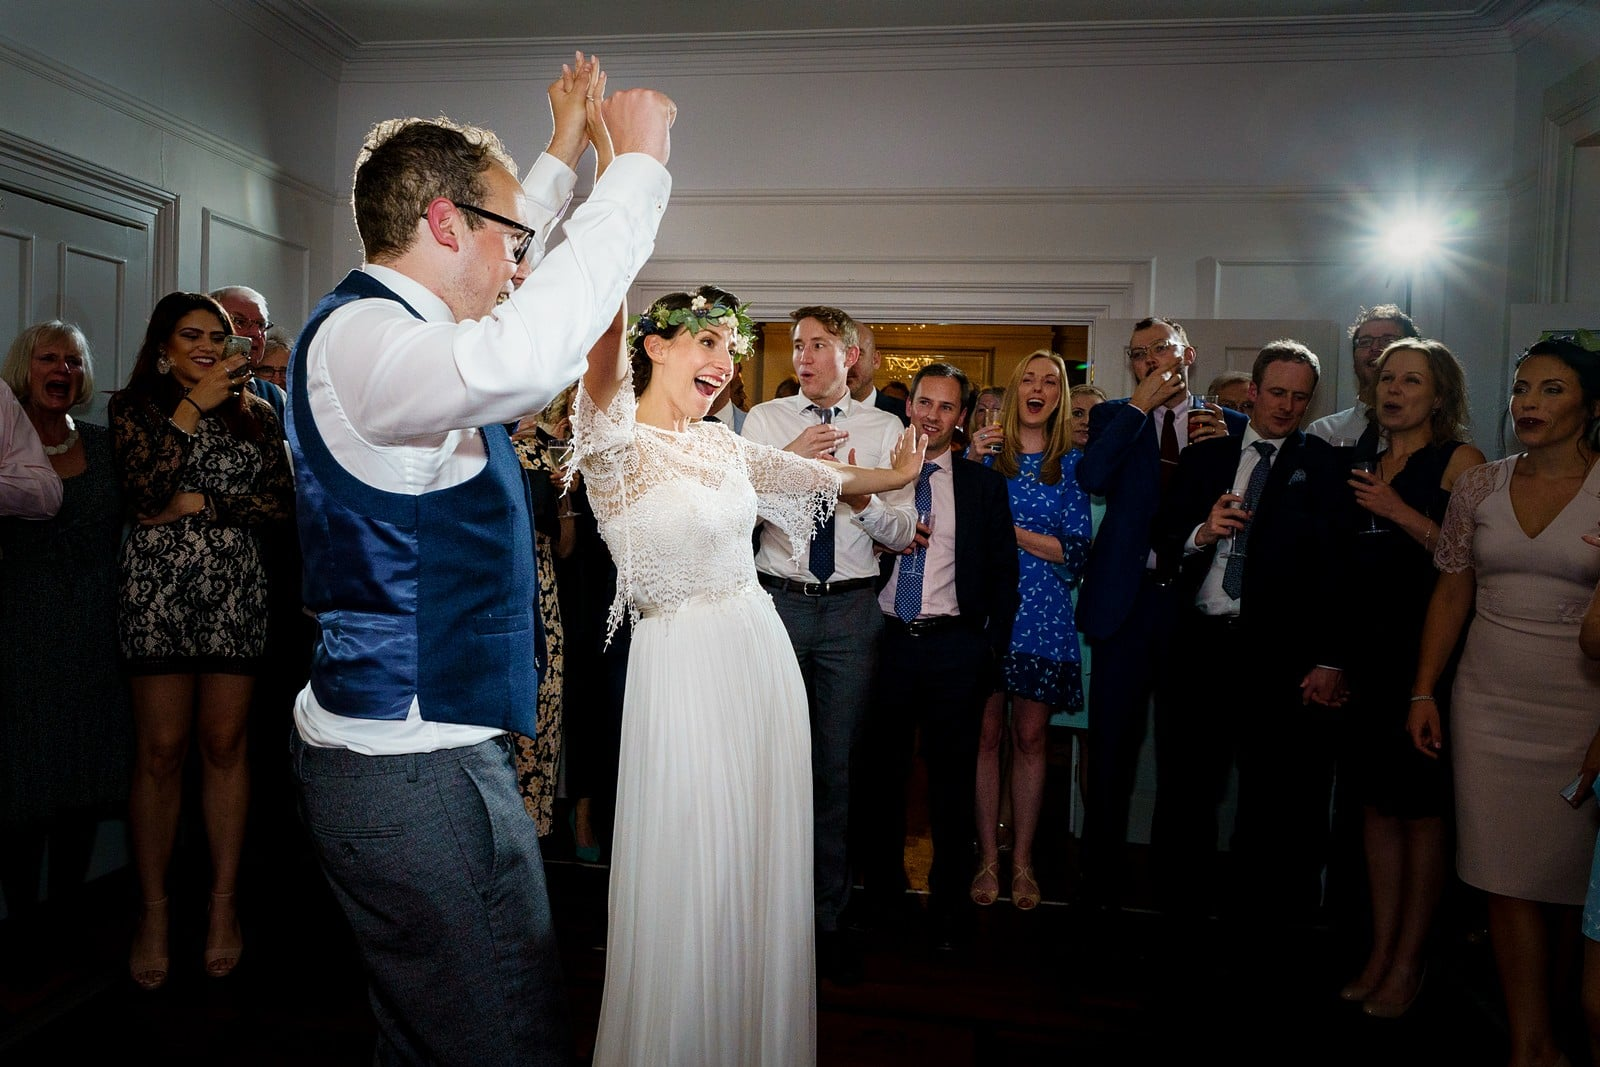 First dance wedding photography at the Rosevine hotel 1